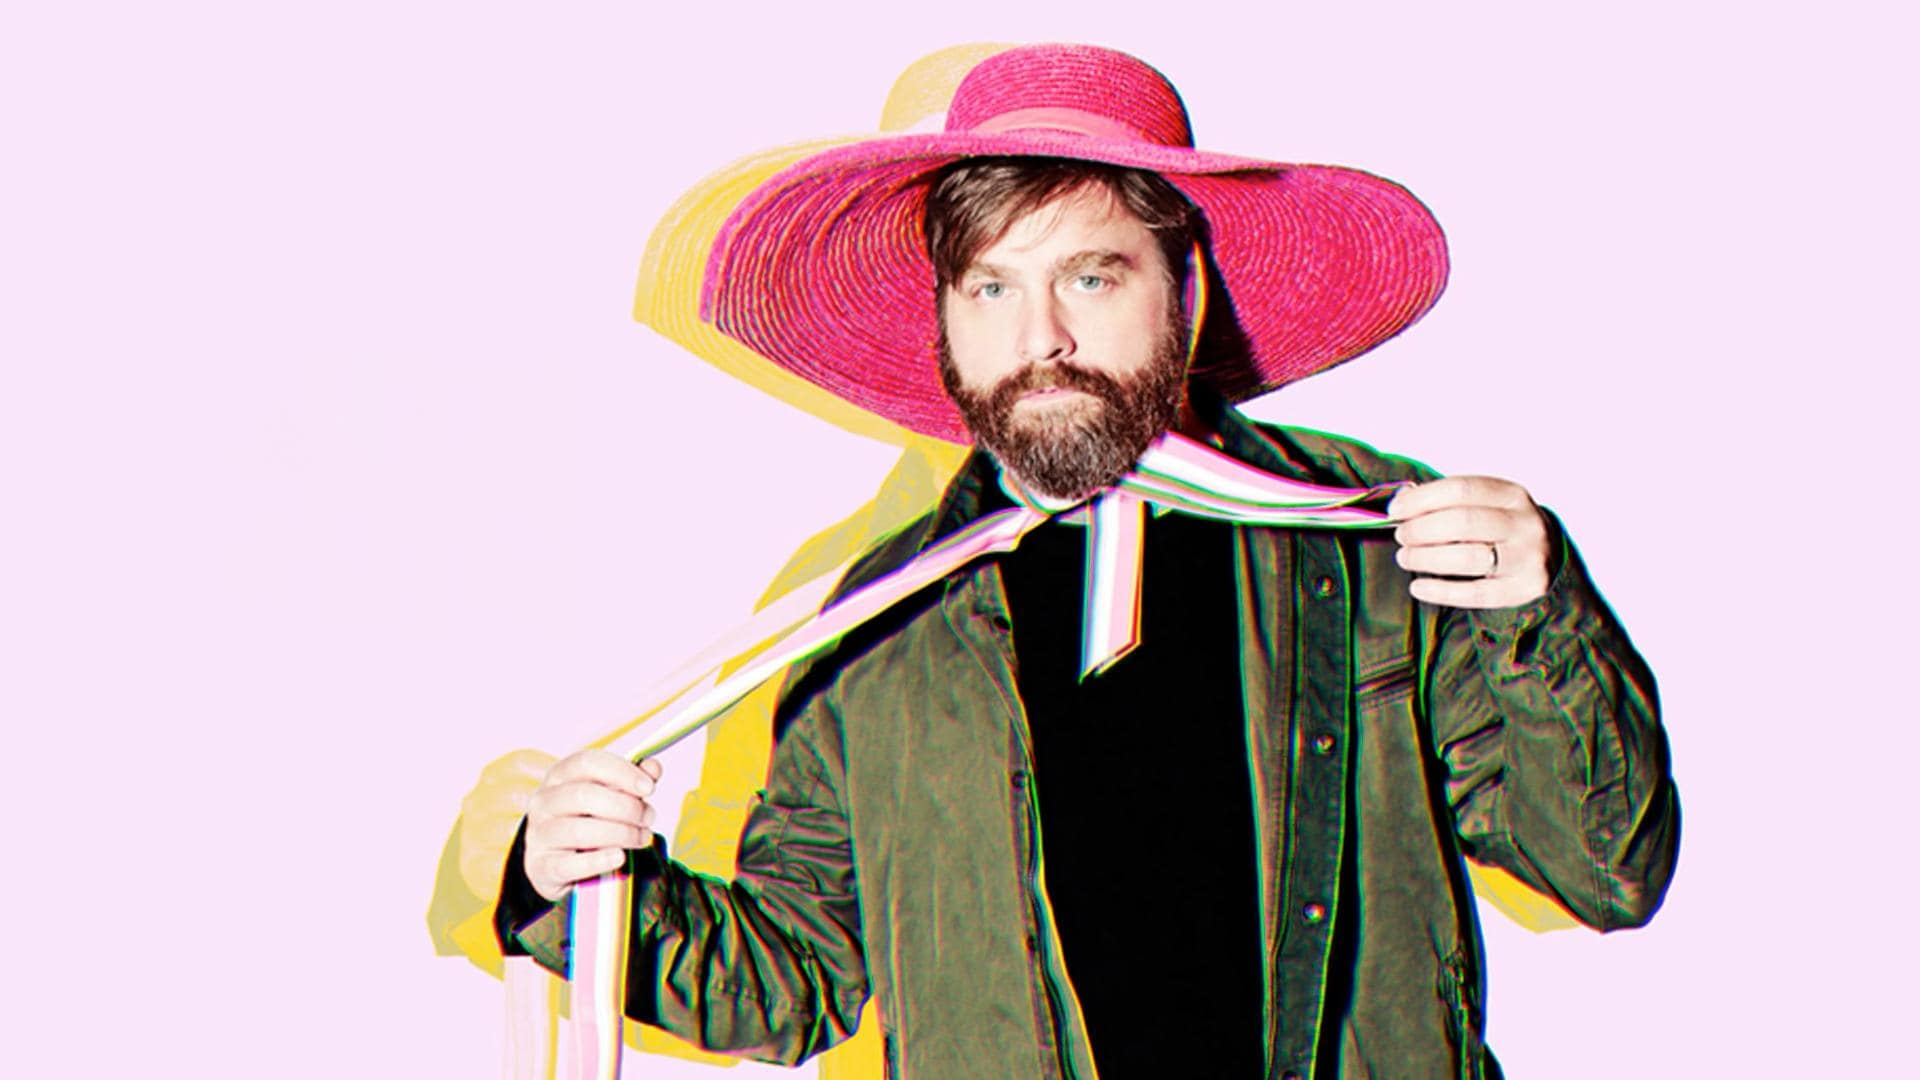 Zach Galifianakis: May 4, 2013